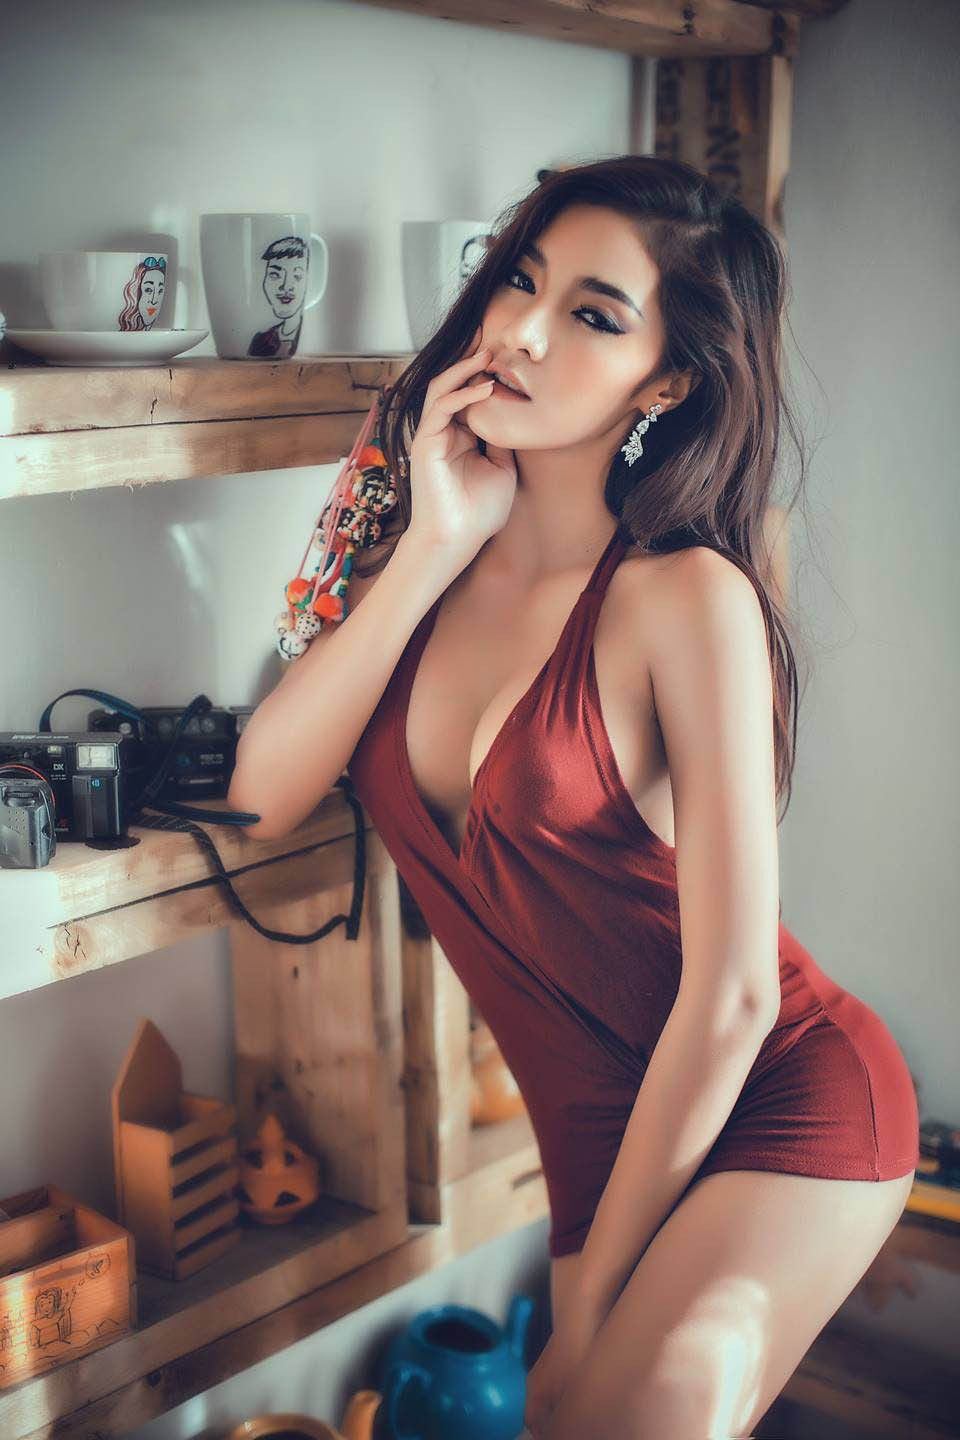 Asian hot picture woman